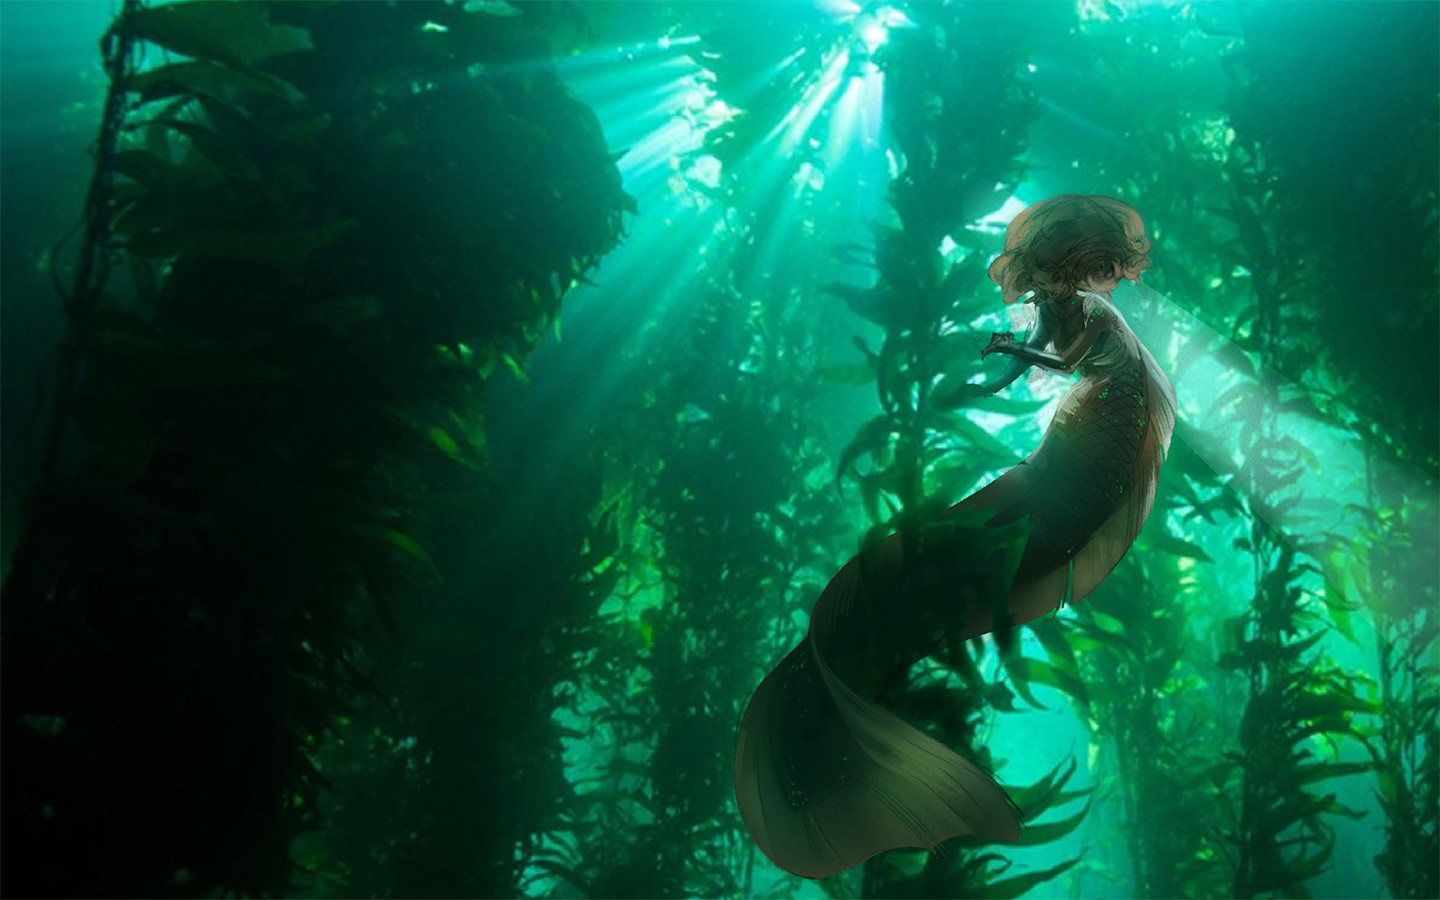 original photo from http://oceana.org/marine-life/marine-science-and-ecosystems/kelp-forest